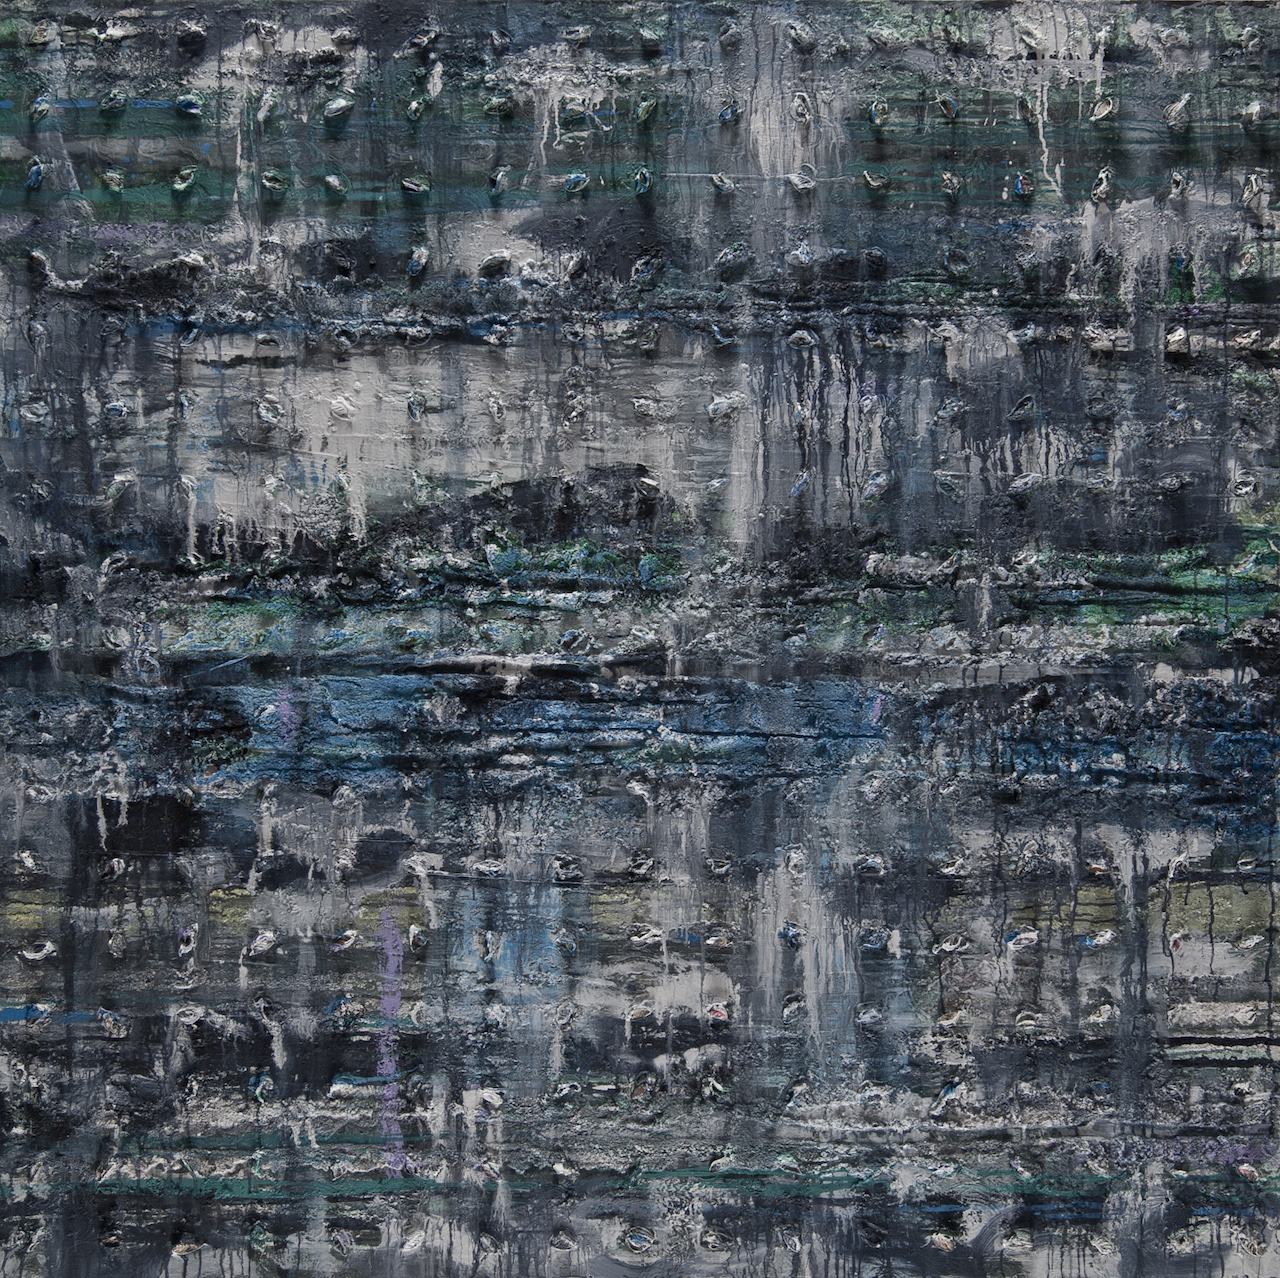 """Thaier Helal, """"Assi River"""" (2014), mixed media on canvas (courtesy the artist and Ayyam Gallery)"""